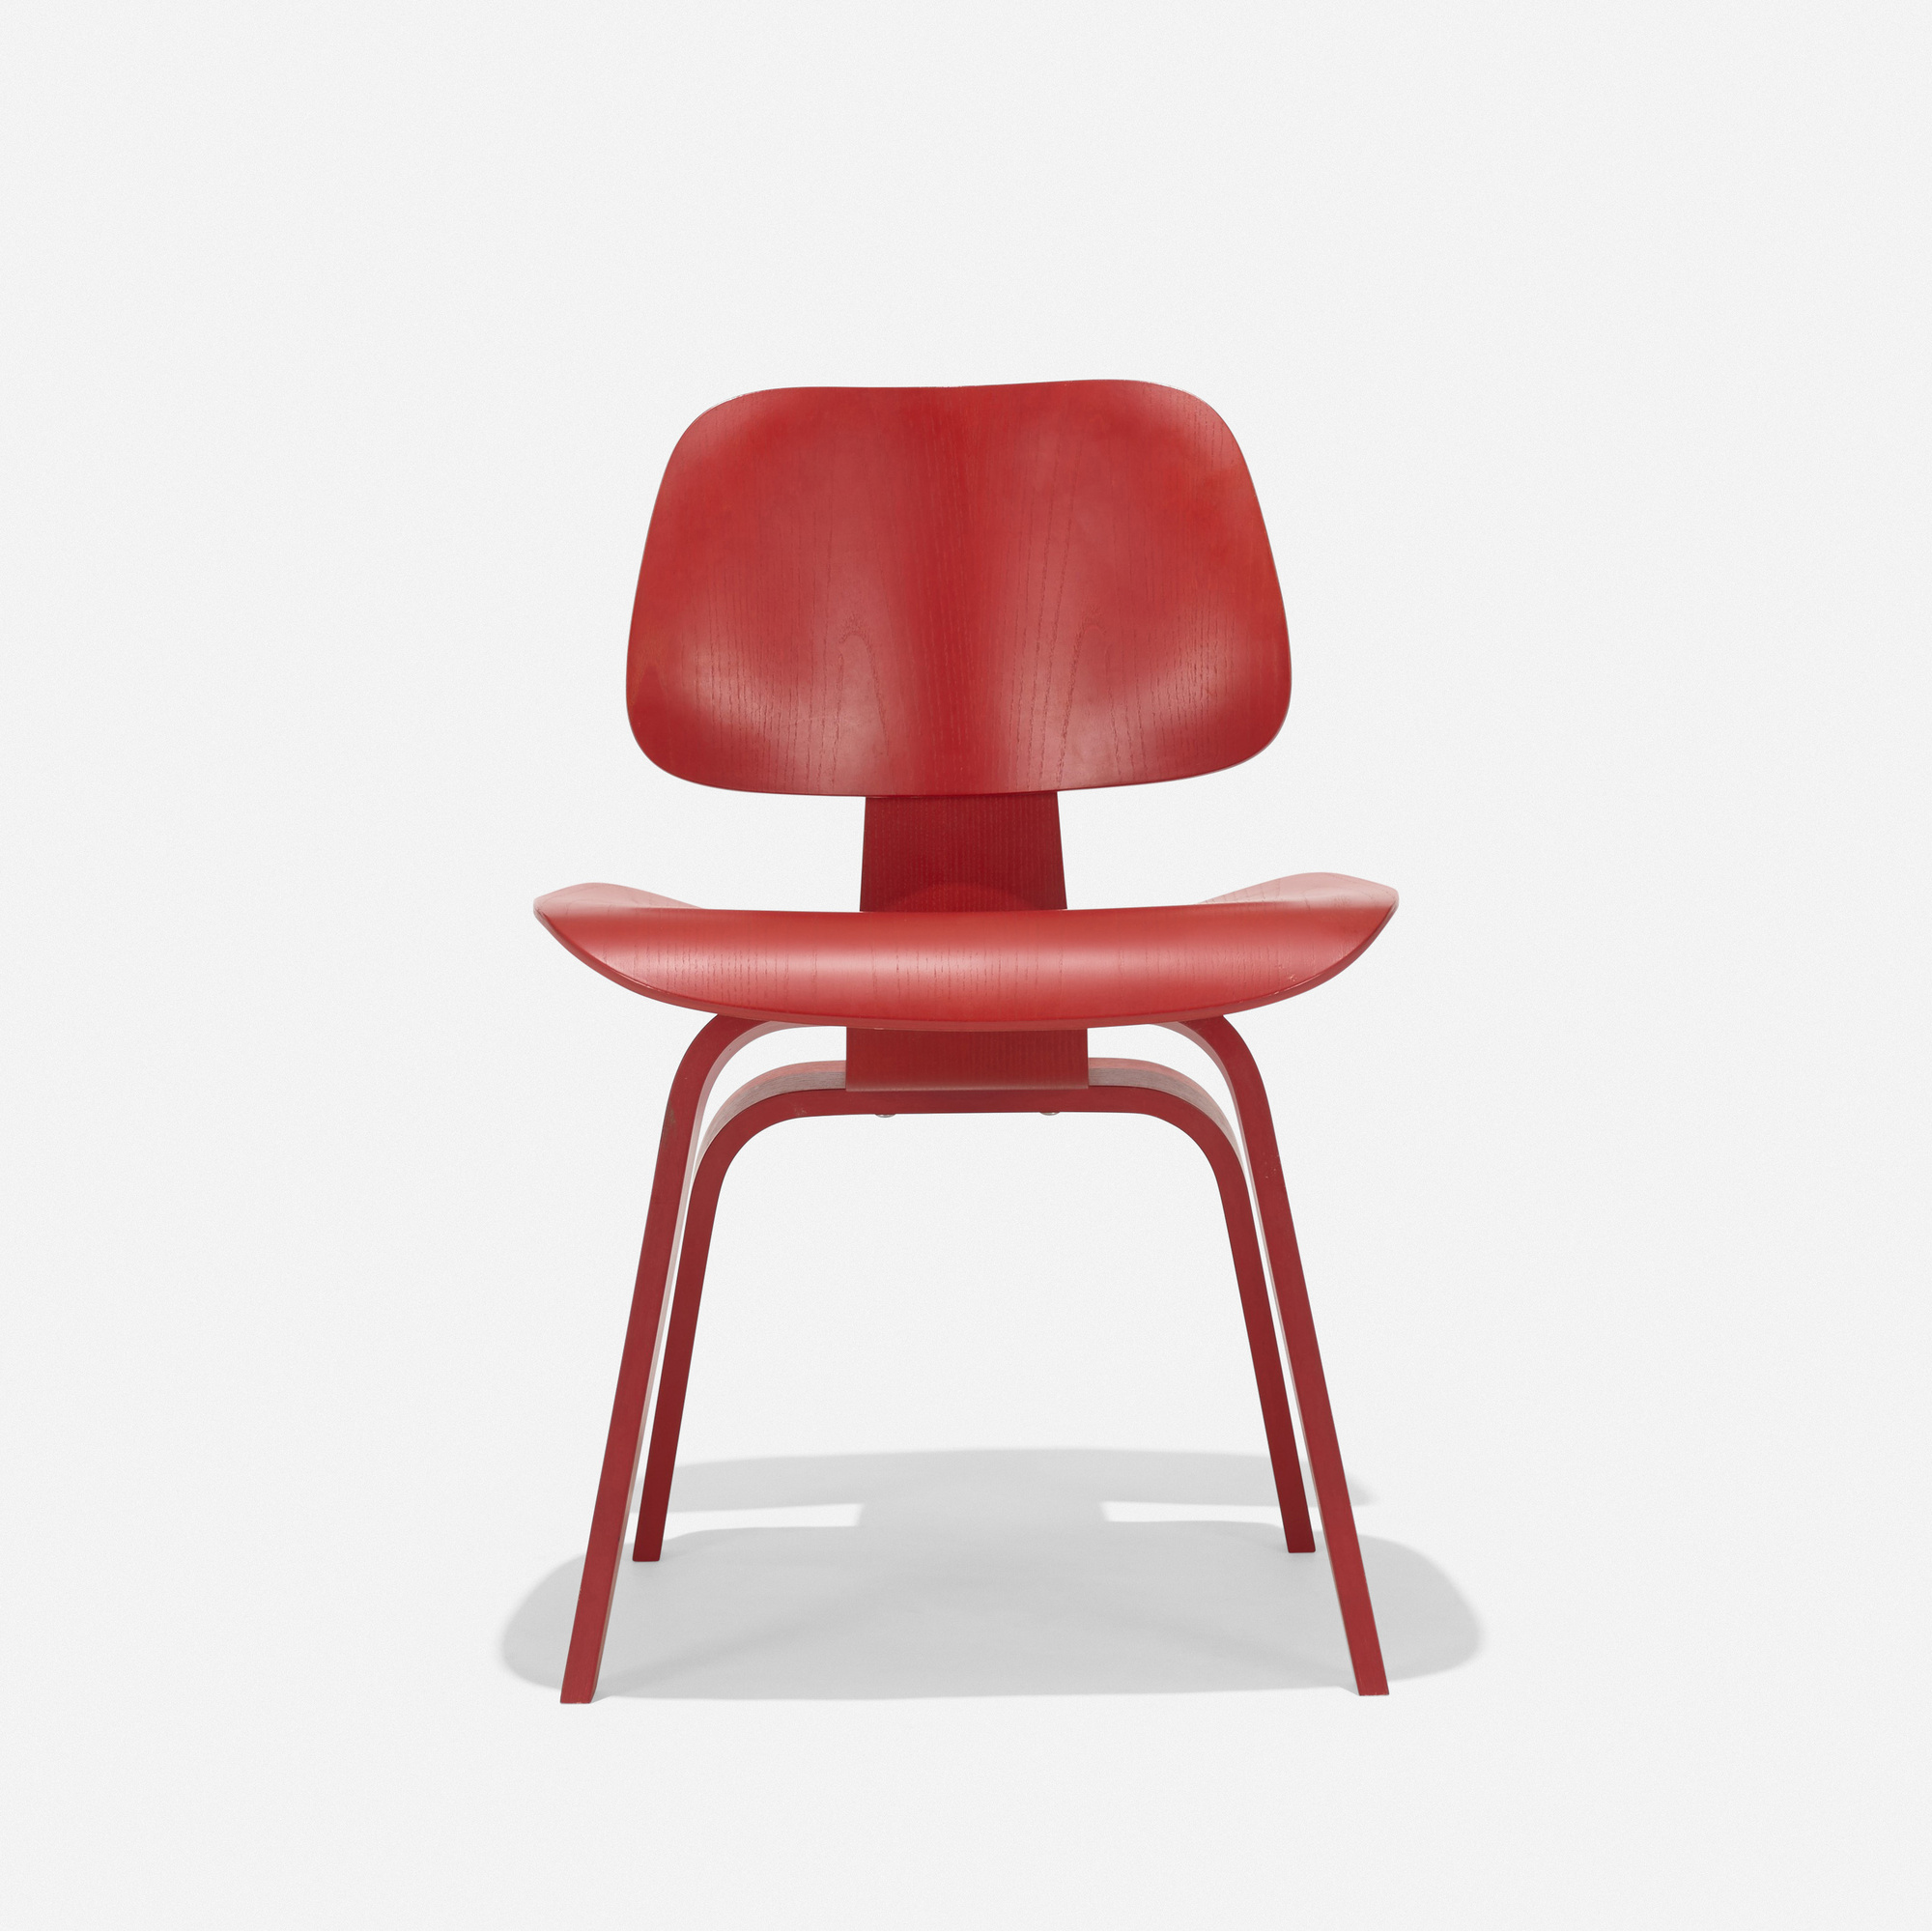 206: Charles and Ray Eames / DCW (2 of 4)